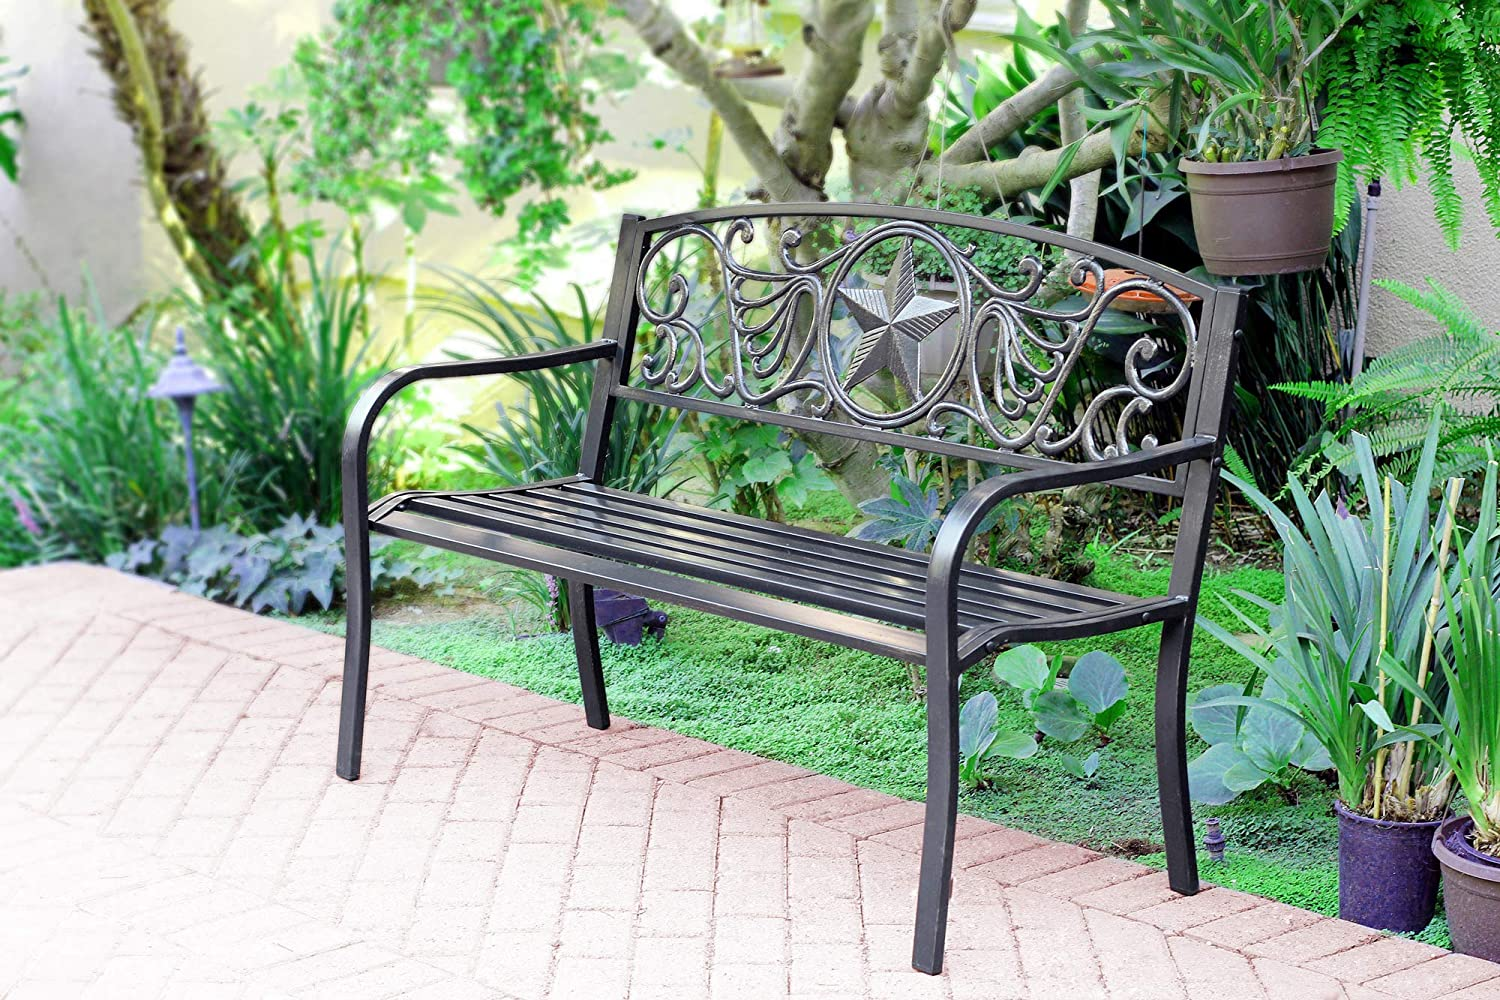 Jeco PB005 50 L Star Curved Back Steel Park Bench, 50.39 L x 23.03 W x 35.03 H, Black